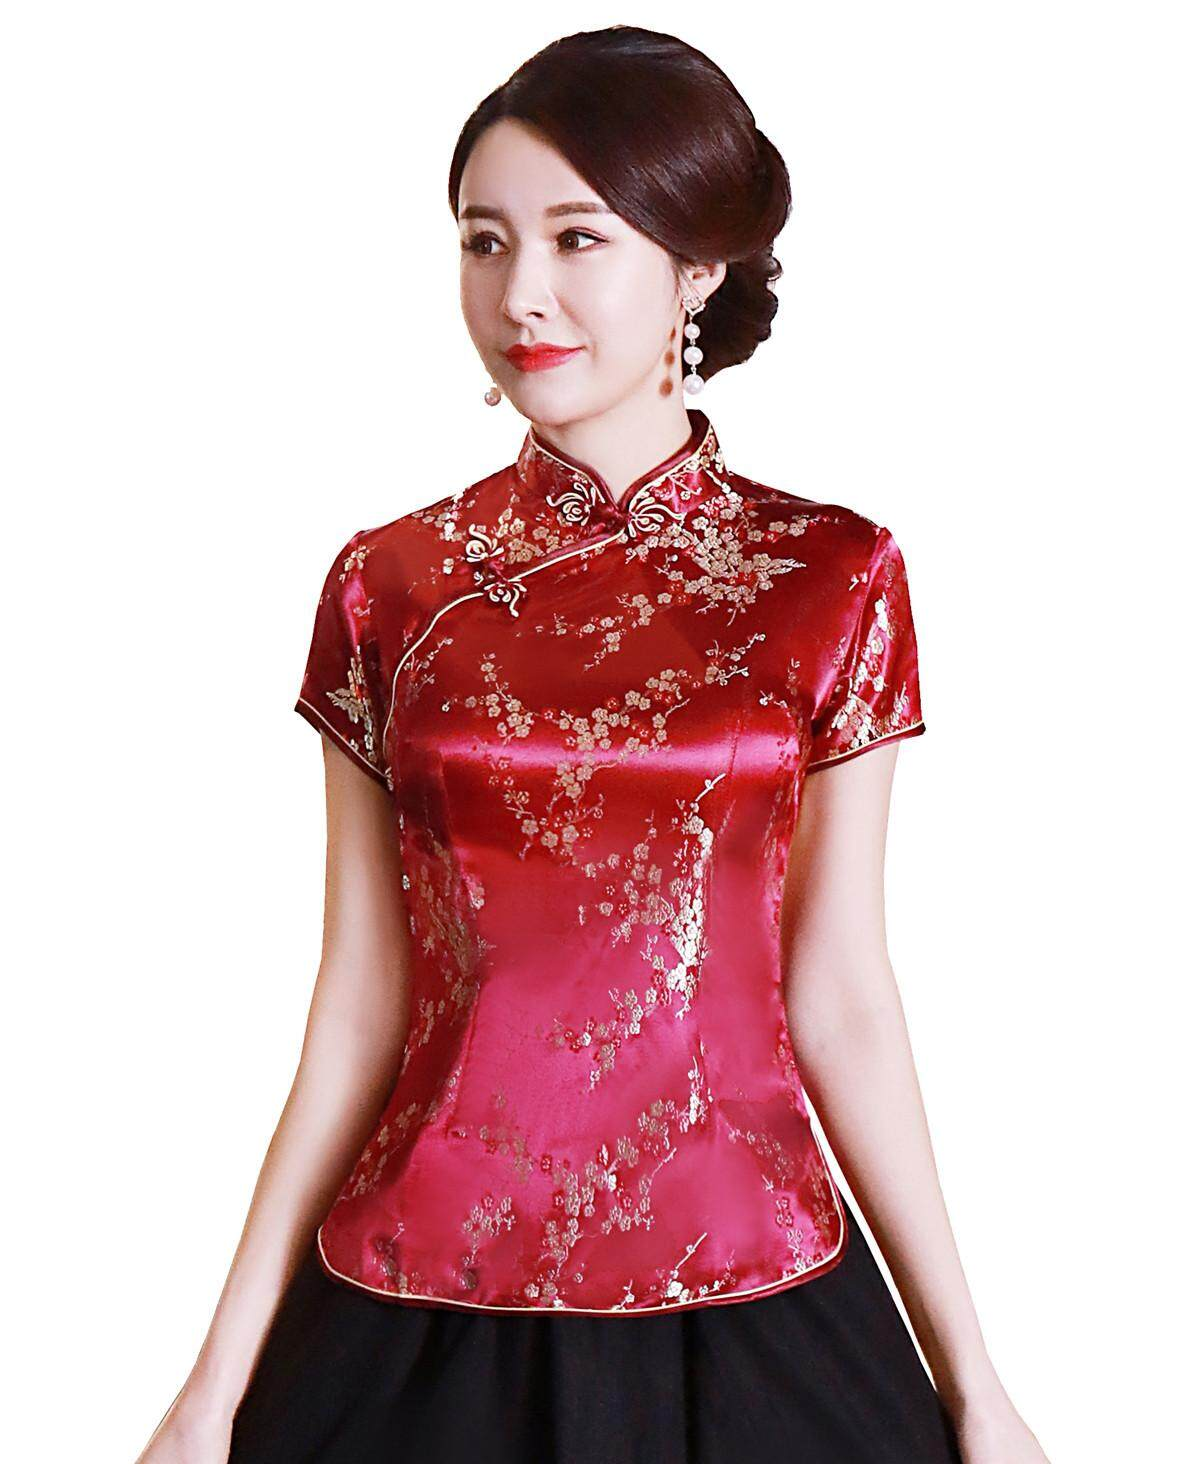 3982d8aed Shanghai Story Flower Embroidery Chinese Cheongsam Shirt Short Sleeve China  Blouse for Women Wine Red